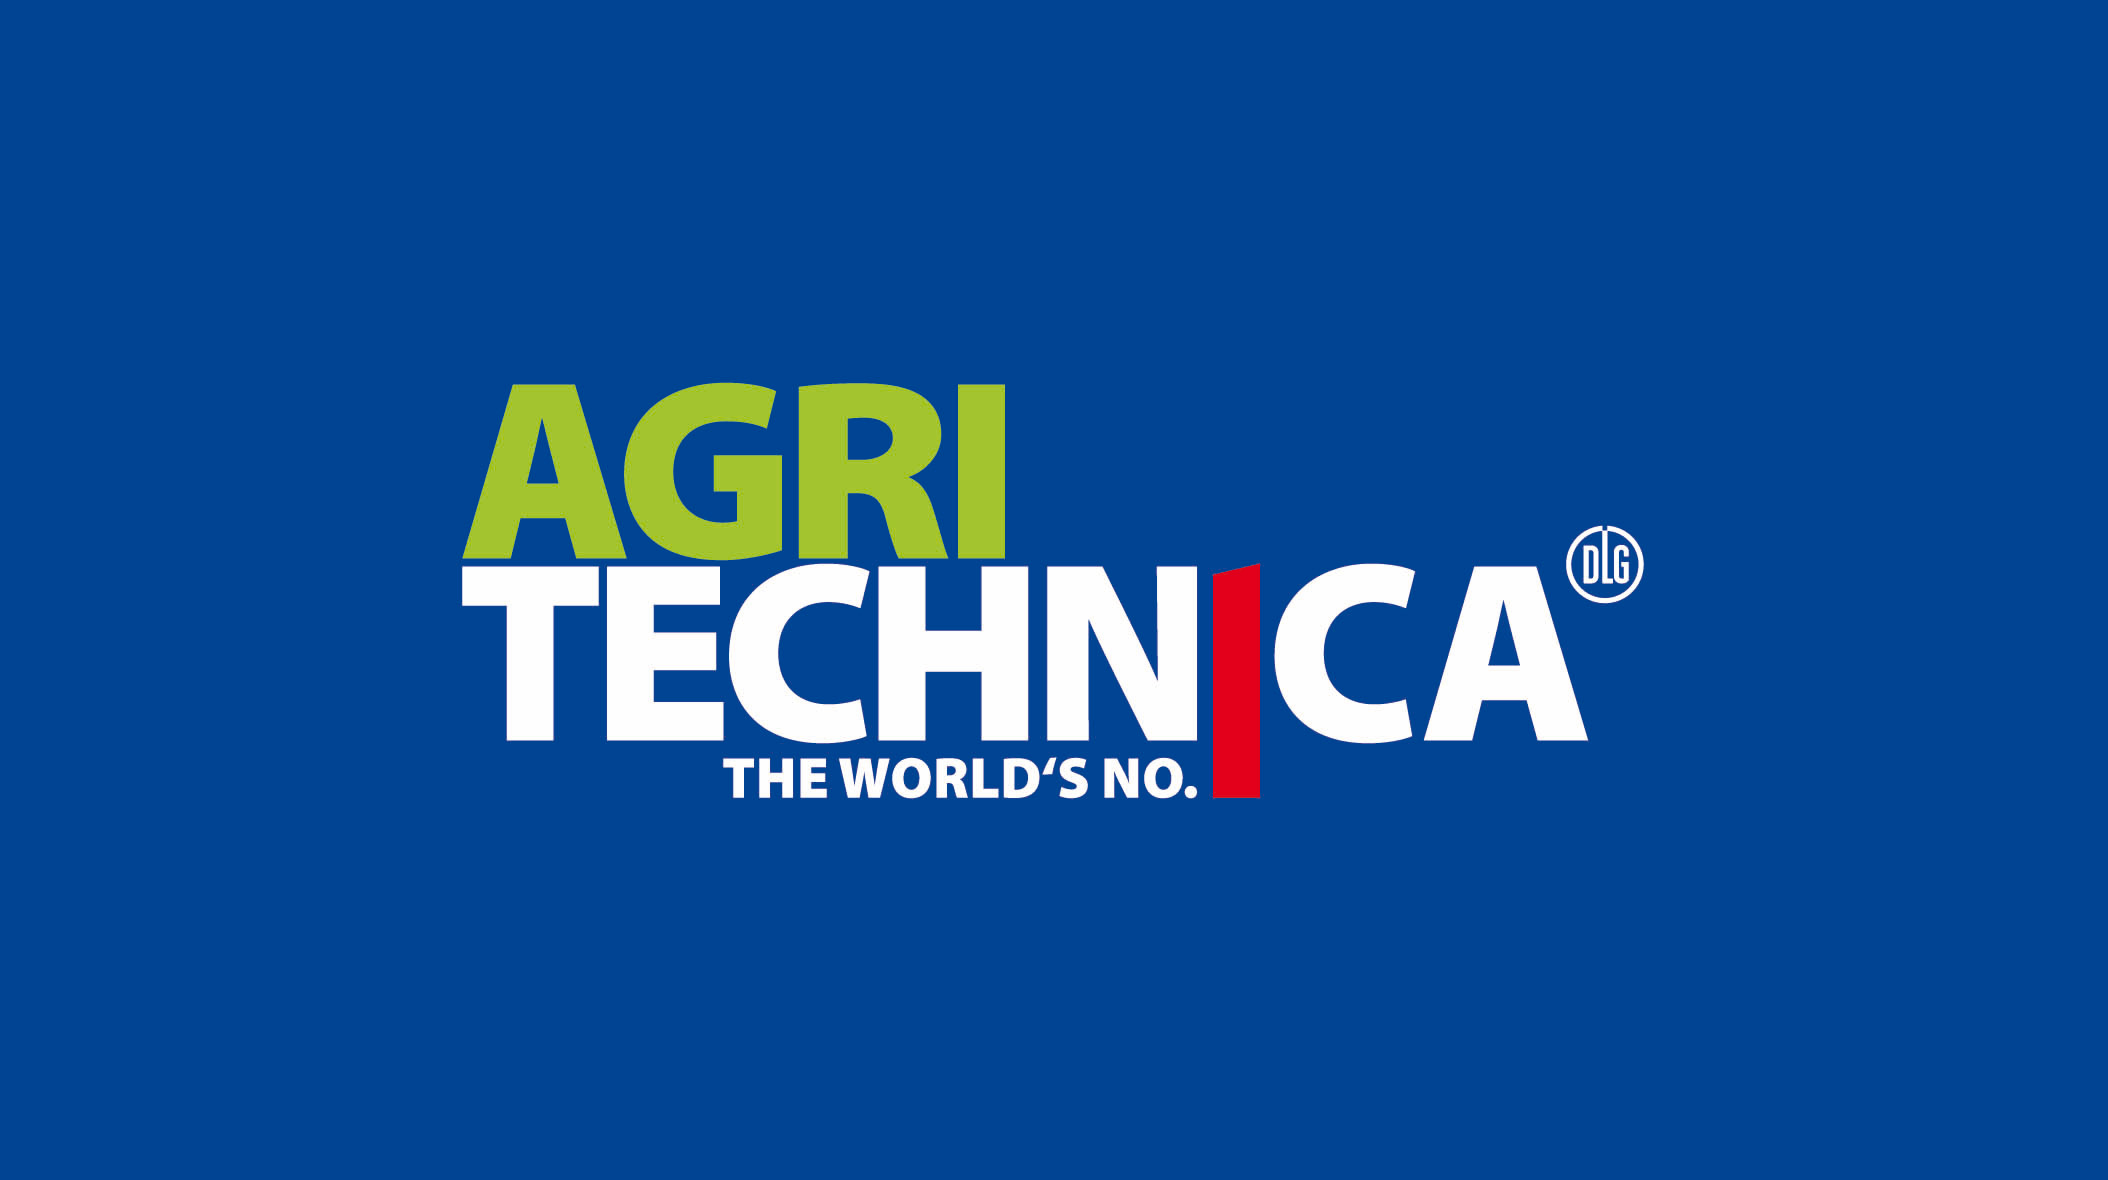 Agritechnica-Frisomat-Fachmesse-Hannover